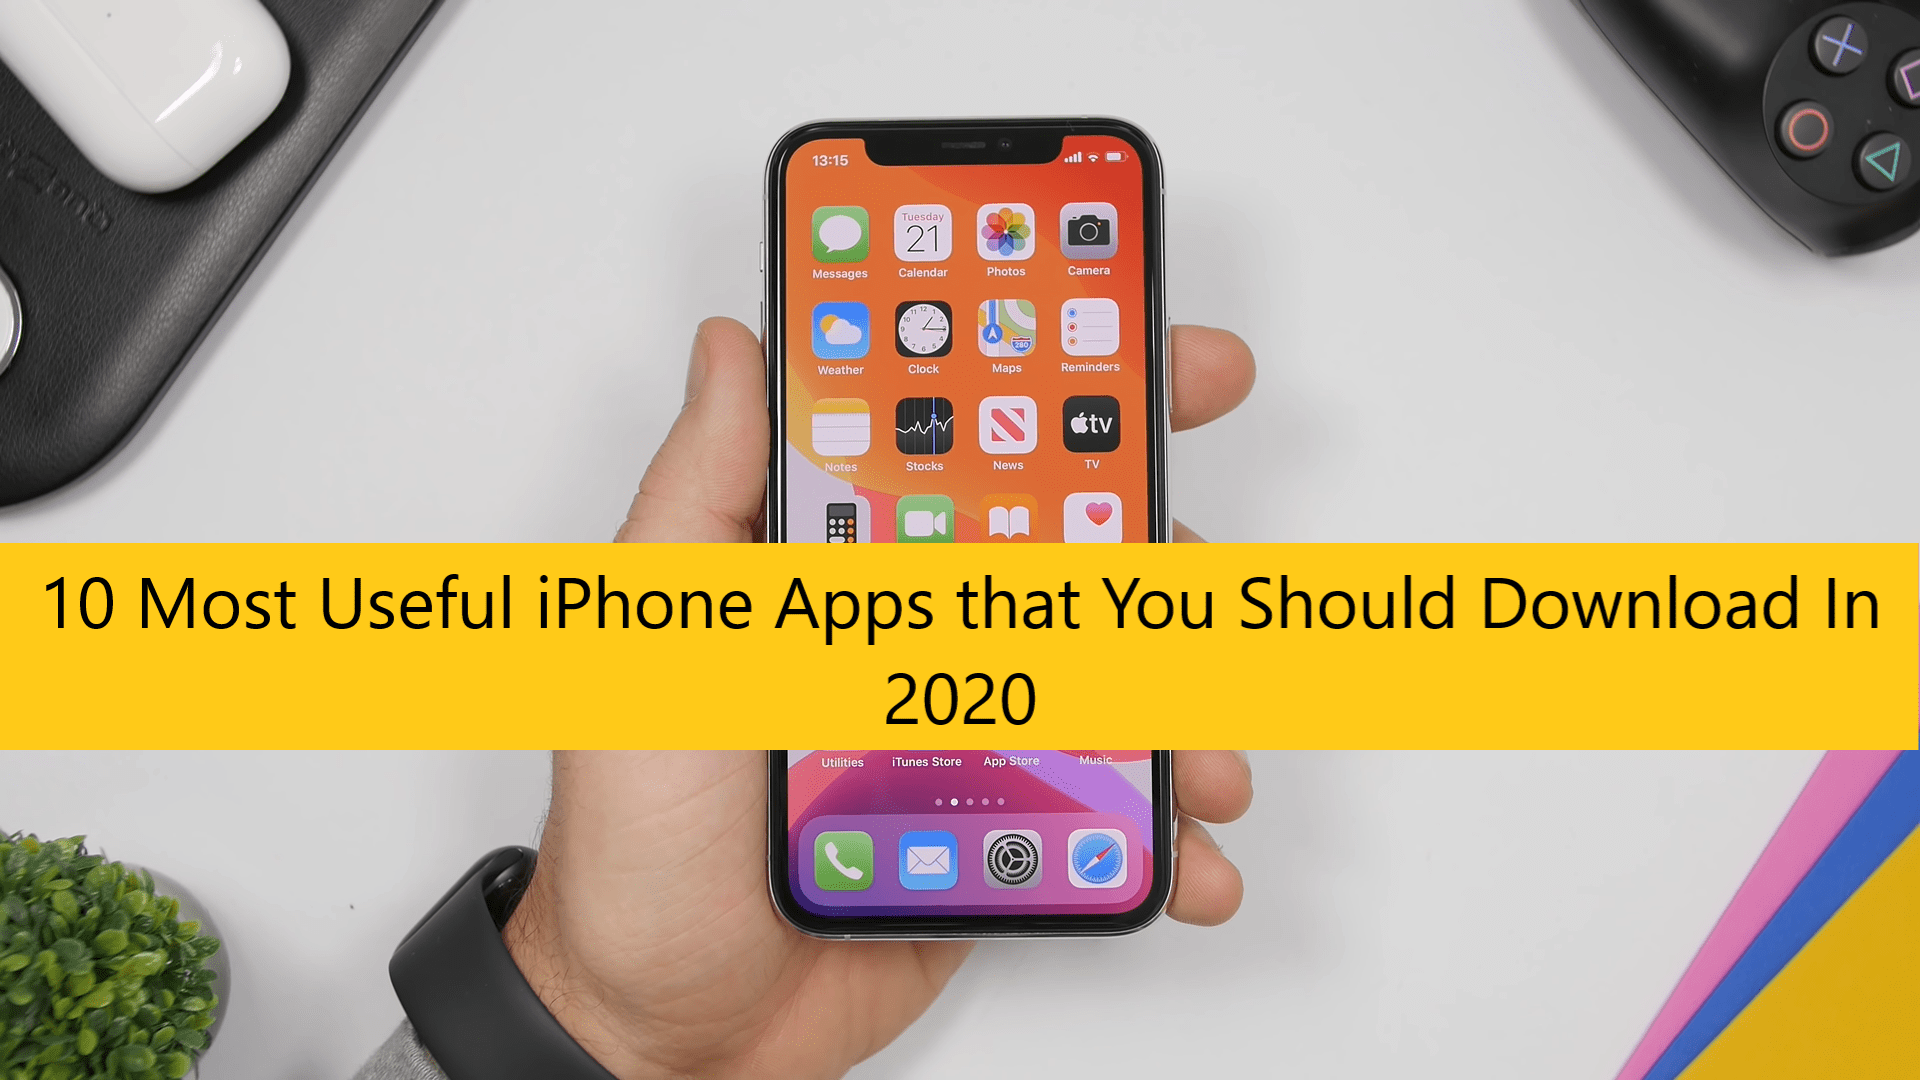 Essential iPhone Apps